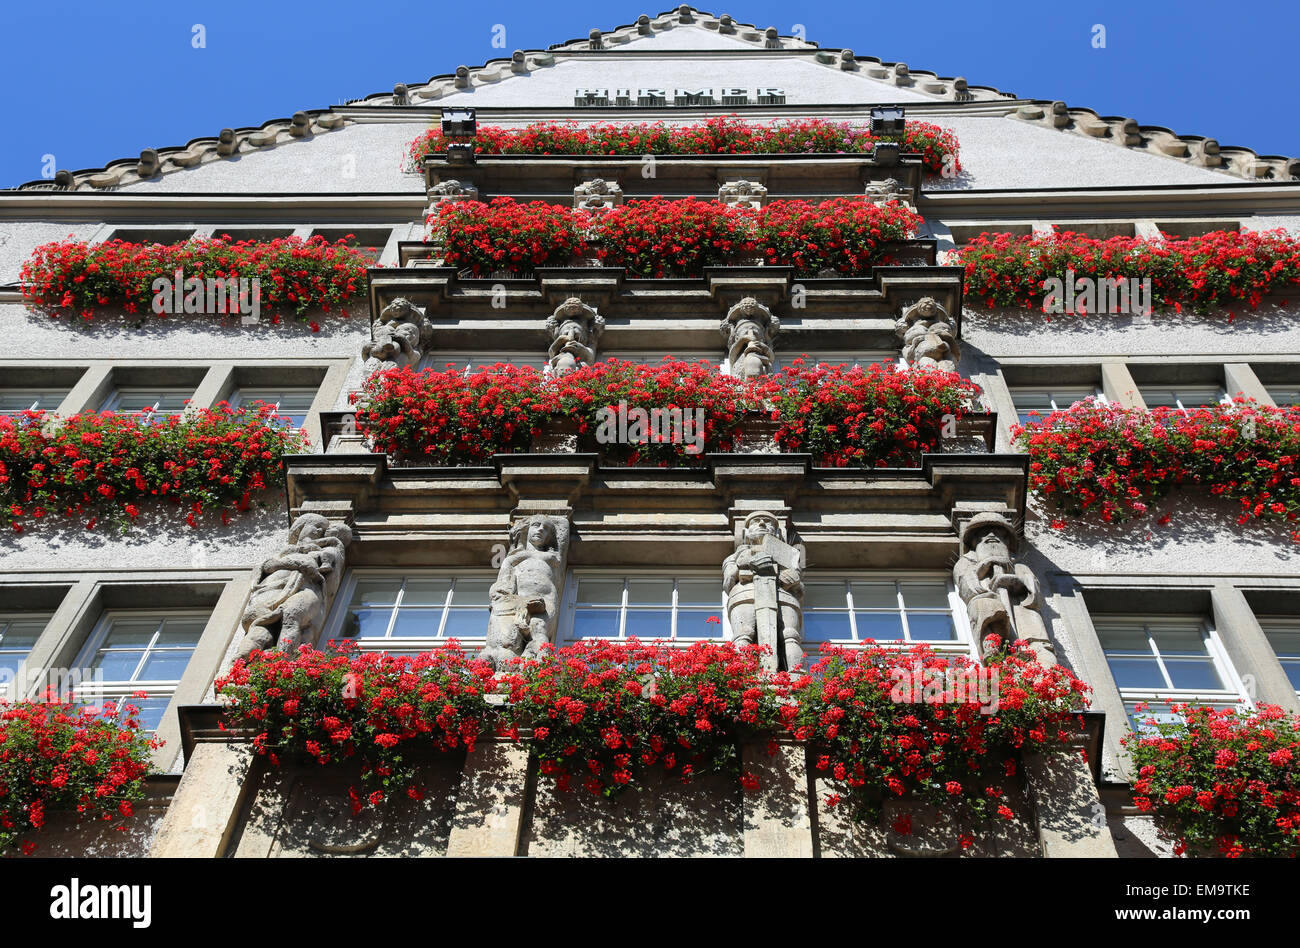 Swiss chalet with red geranium flowers in summer Stock Photo